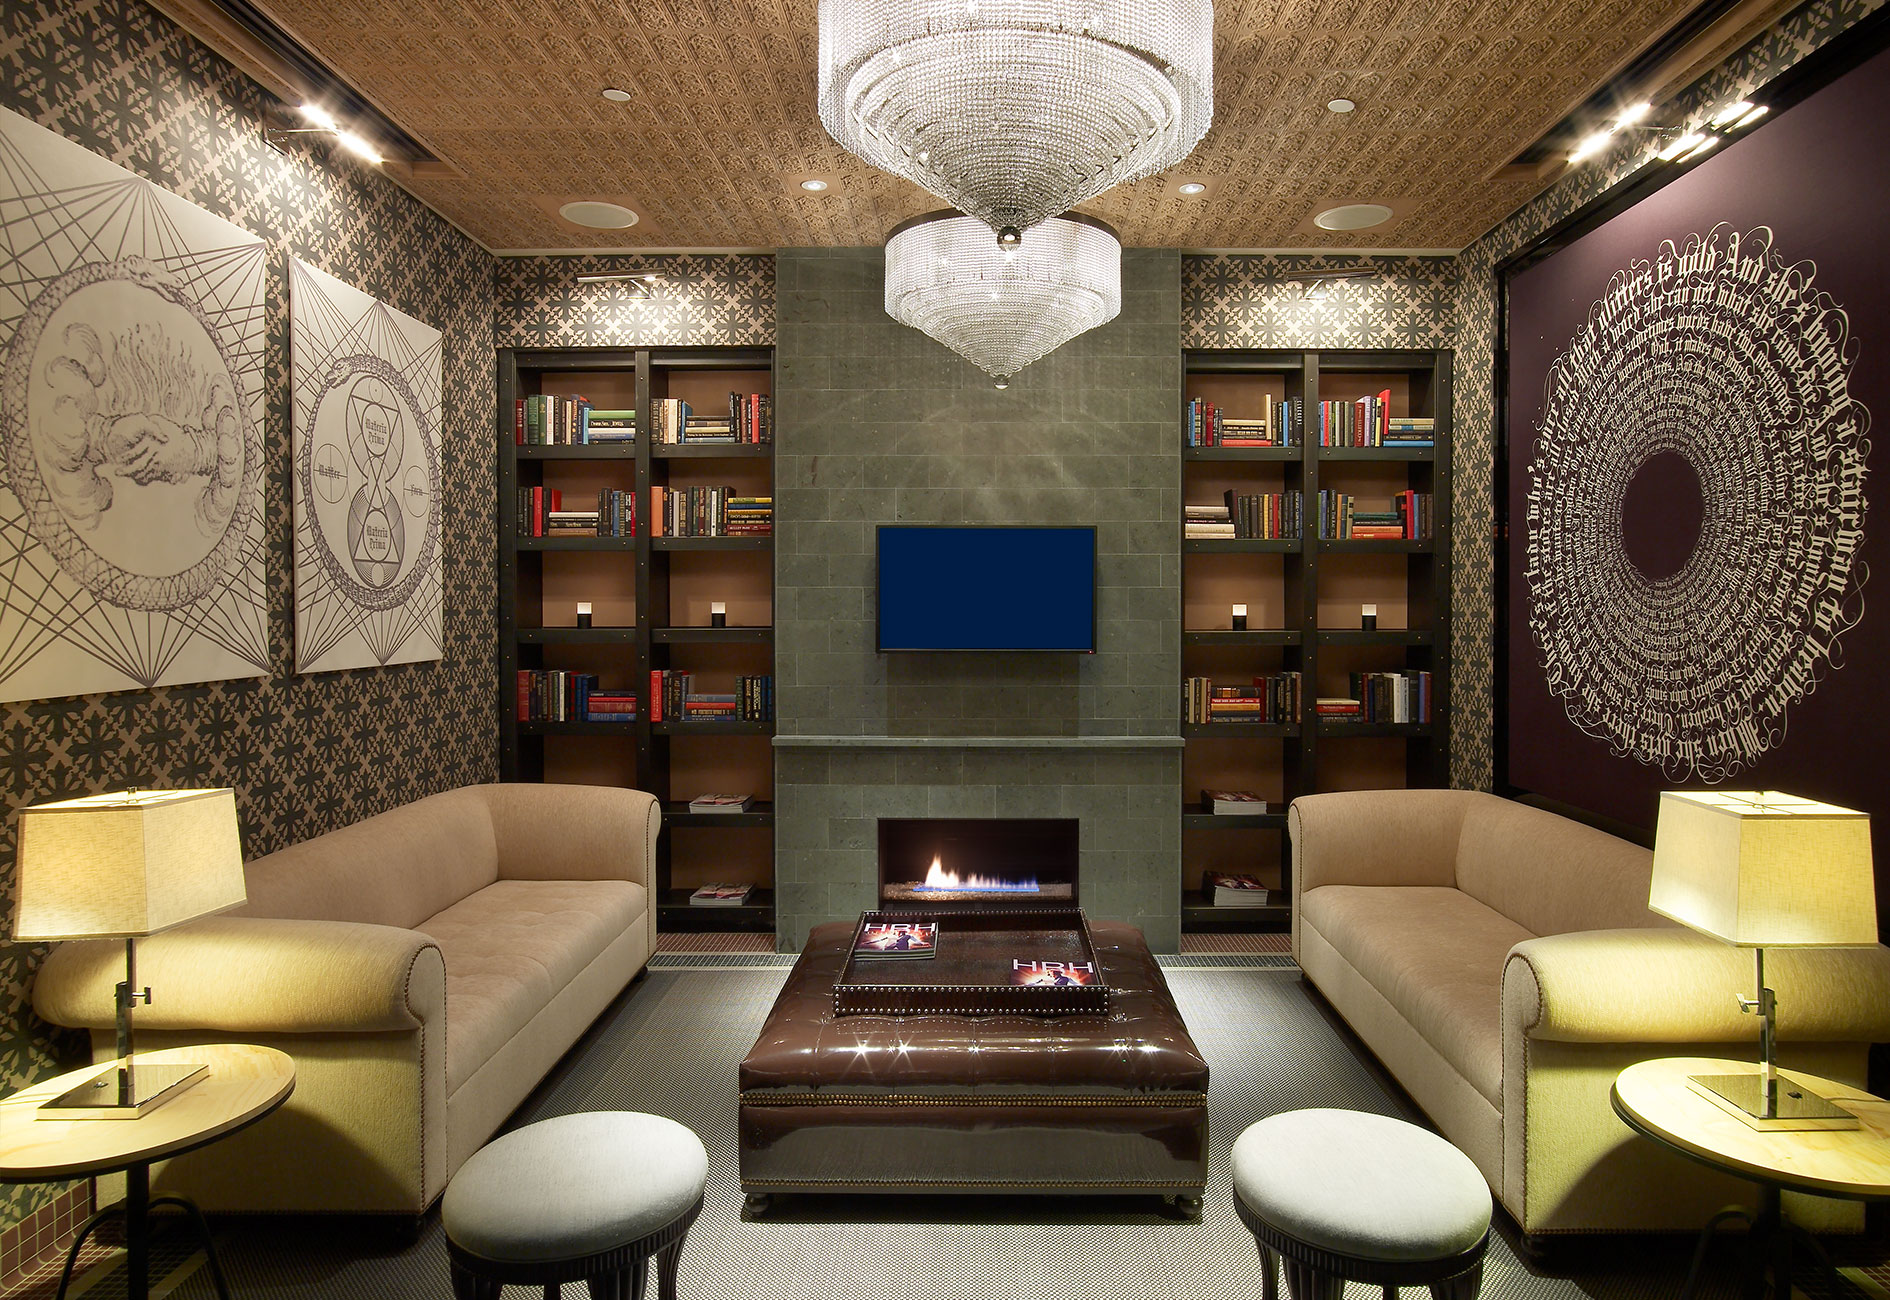 Hard rock hotel spa mark zeff design for A design and color salon little rock